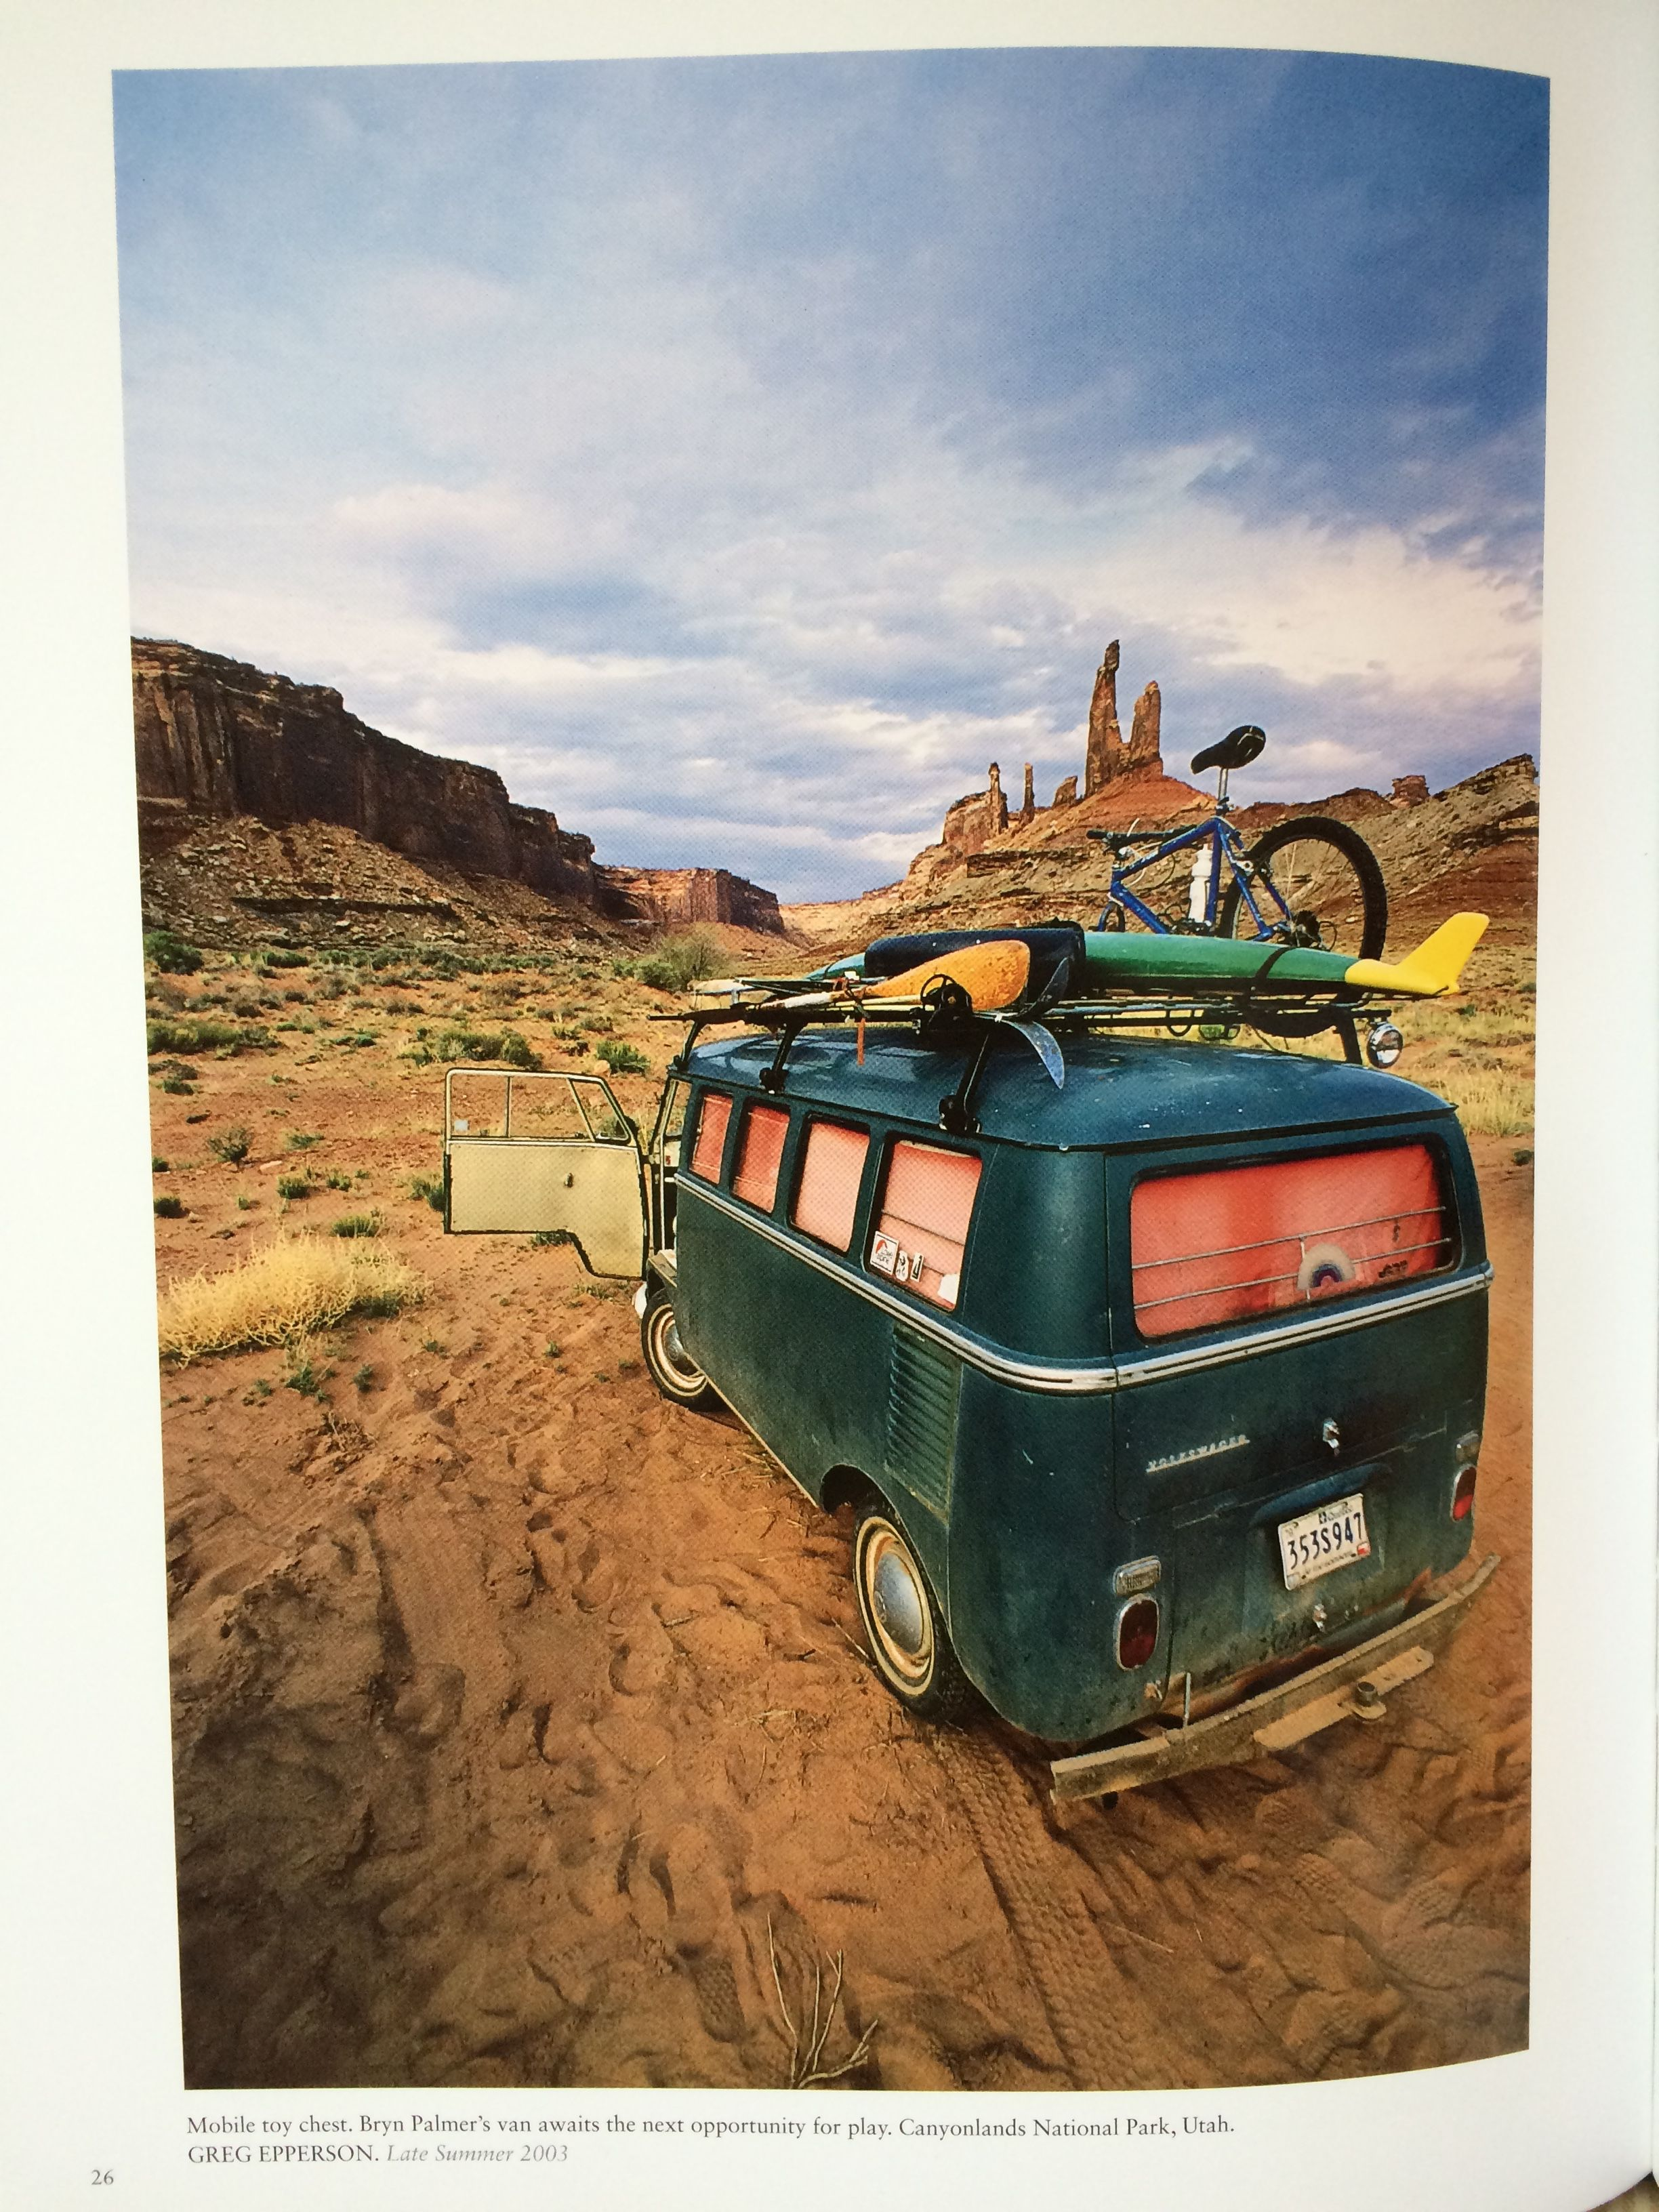 """""""Mobile toy chest. Bryan Palmer's van awaits the next opportunity for play."""" Canyonlands National Park, Utah. Photo: Greg Epperson in Unexpected: 30 Years of Patagonia Catalog Photography. http://bit.ly/1Cbmxul"""